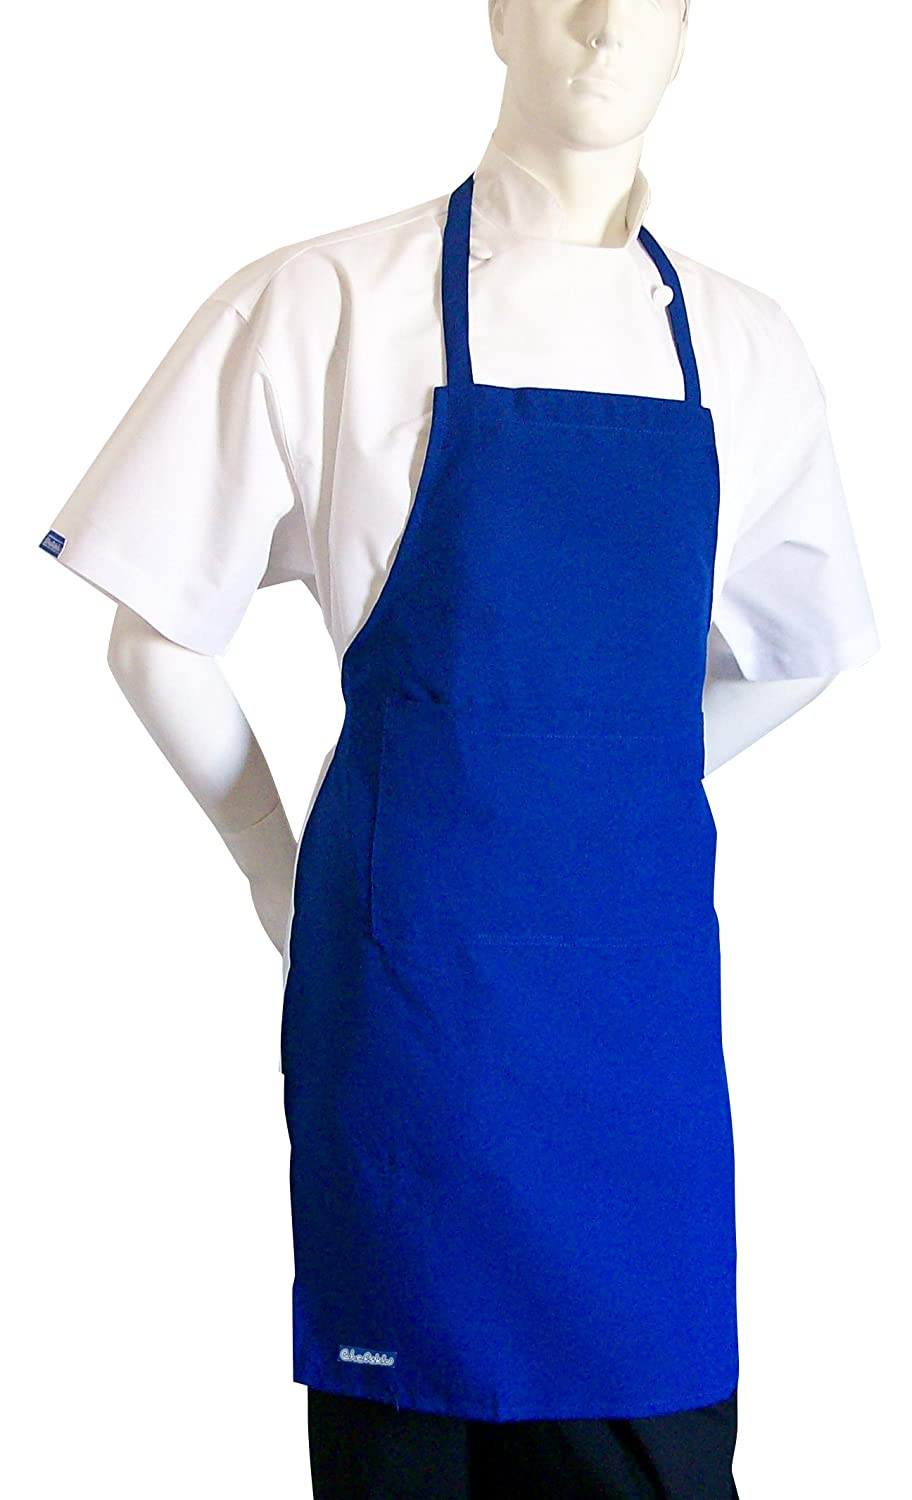 Blue apron dress - Amazon Com Chefskin Royal Blue Apron Kids Children Fits 7 12 Yr Olds 19x28 Inches Real Fabric Home Kitchen